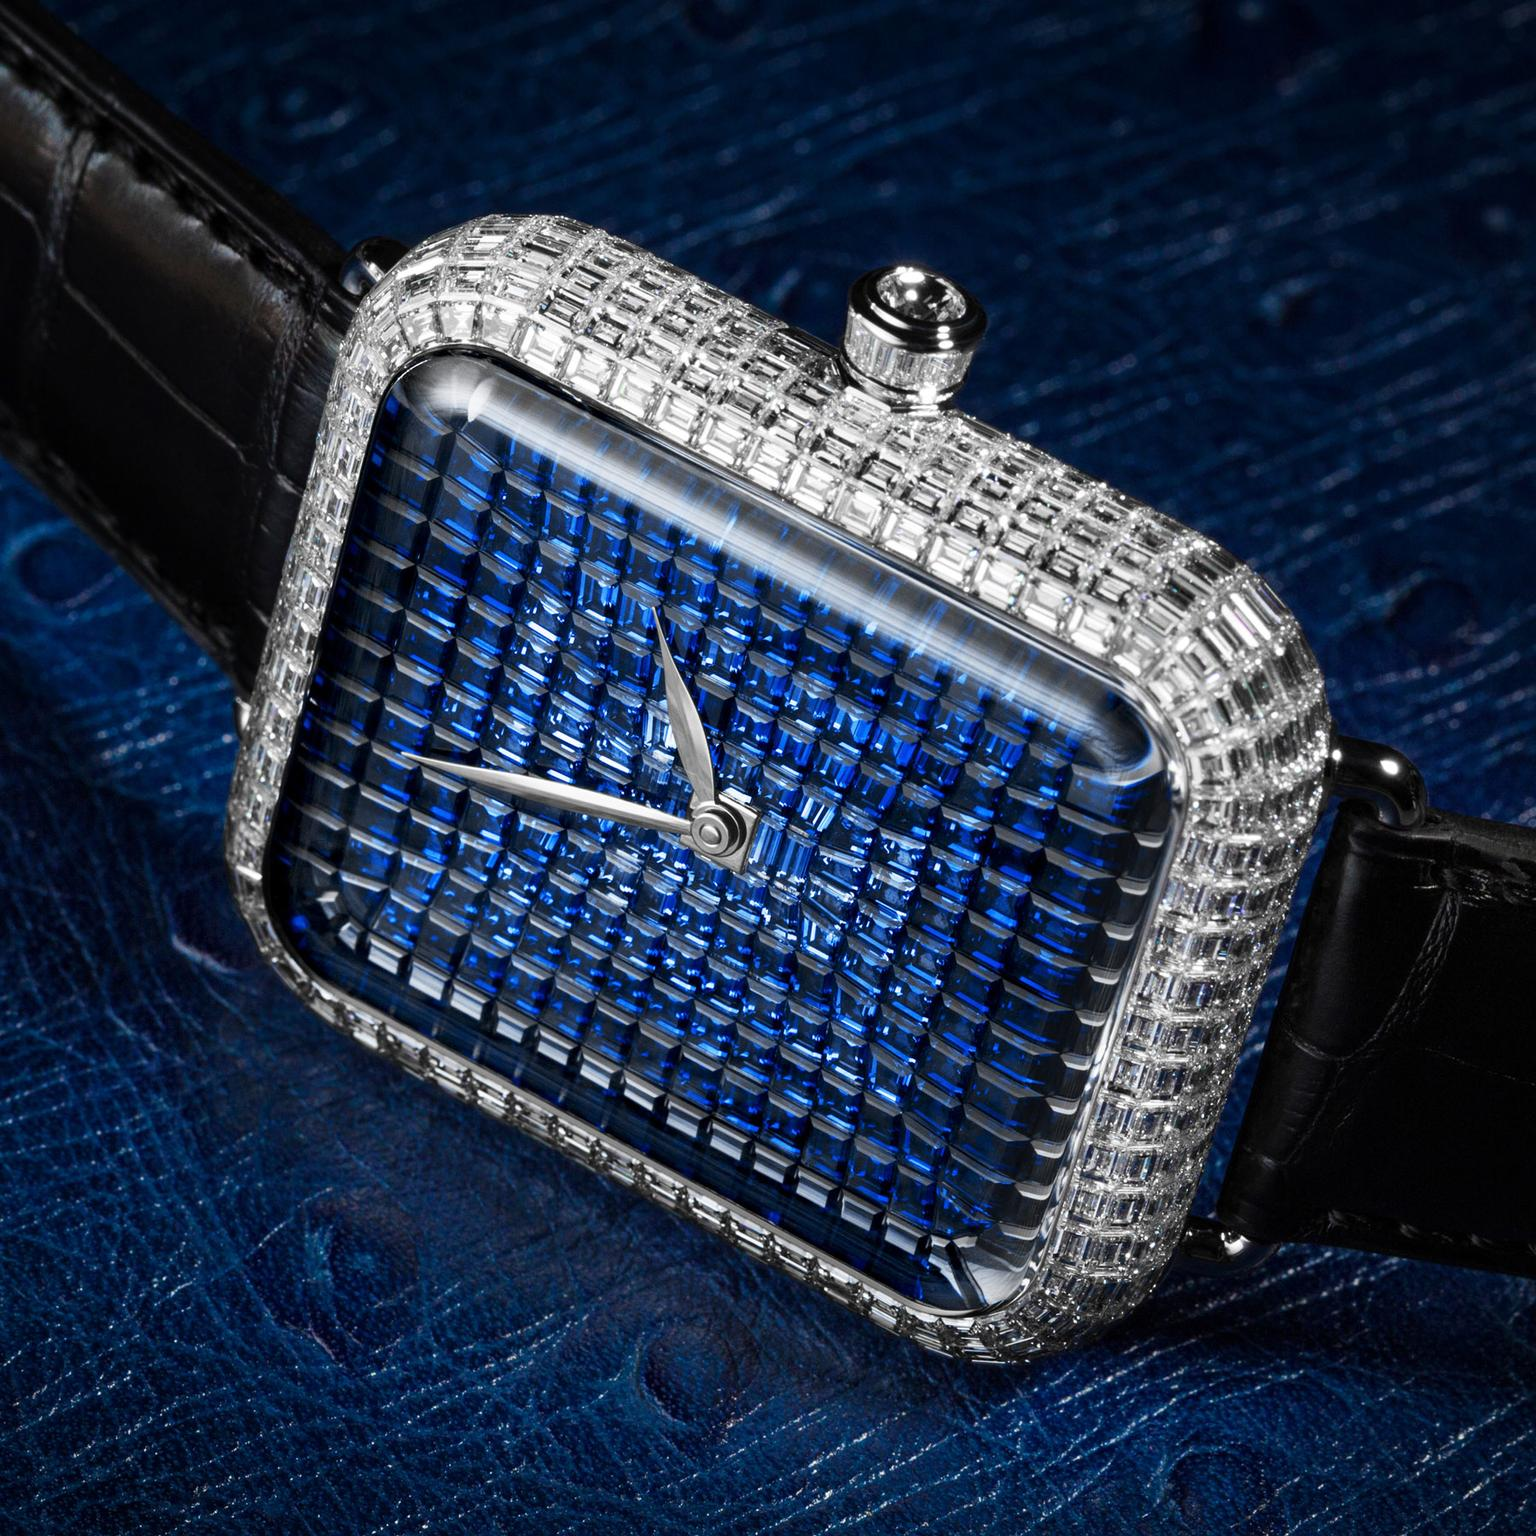 H. Moser & Cie Swiss Alp Watch on the Rocks